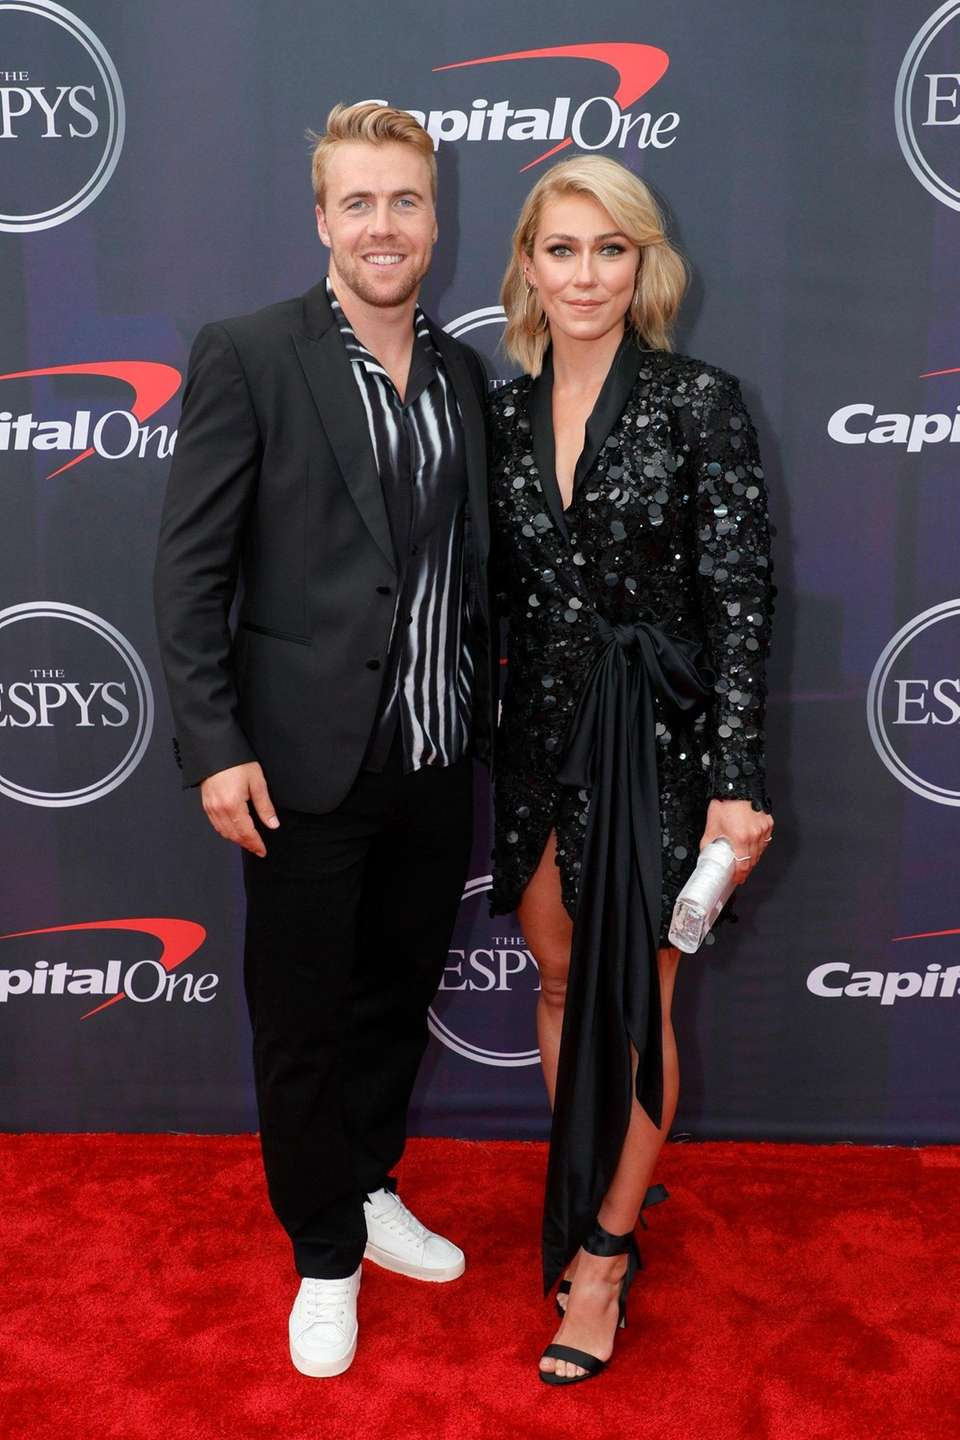 Aleksander Aamodt Kilde and Mikaela Shiffrin attend the